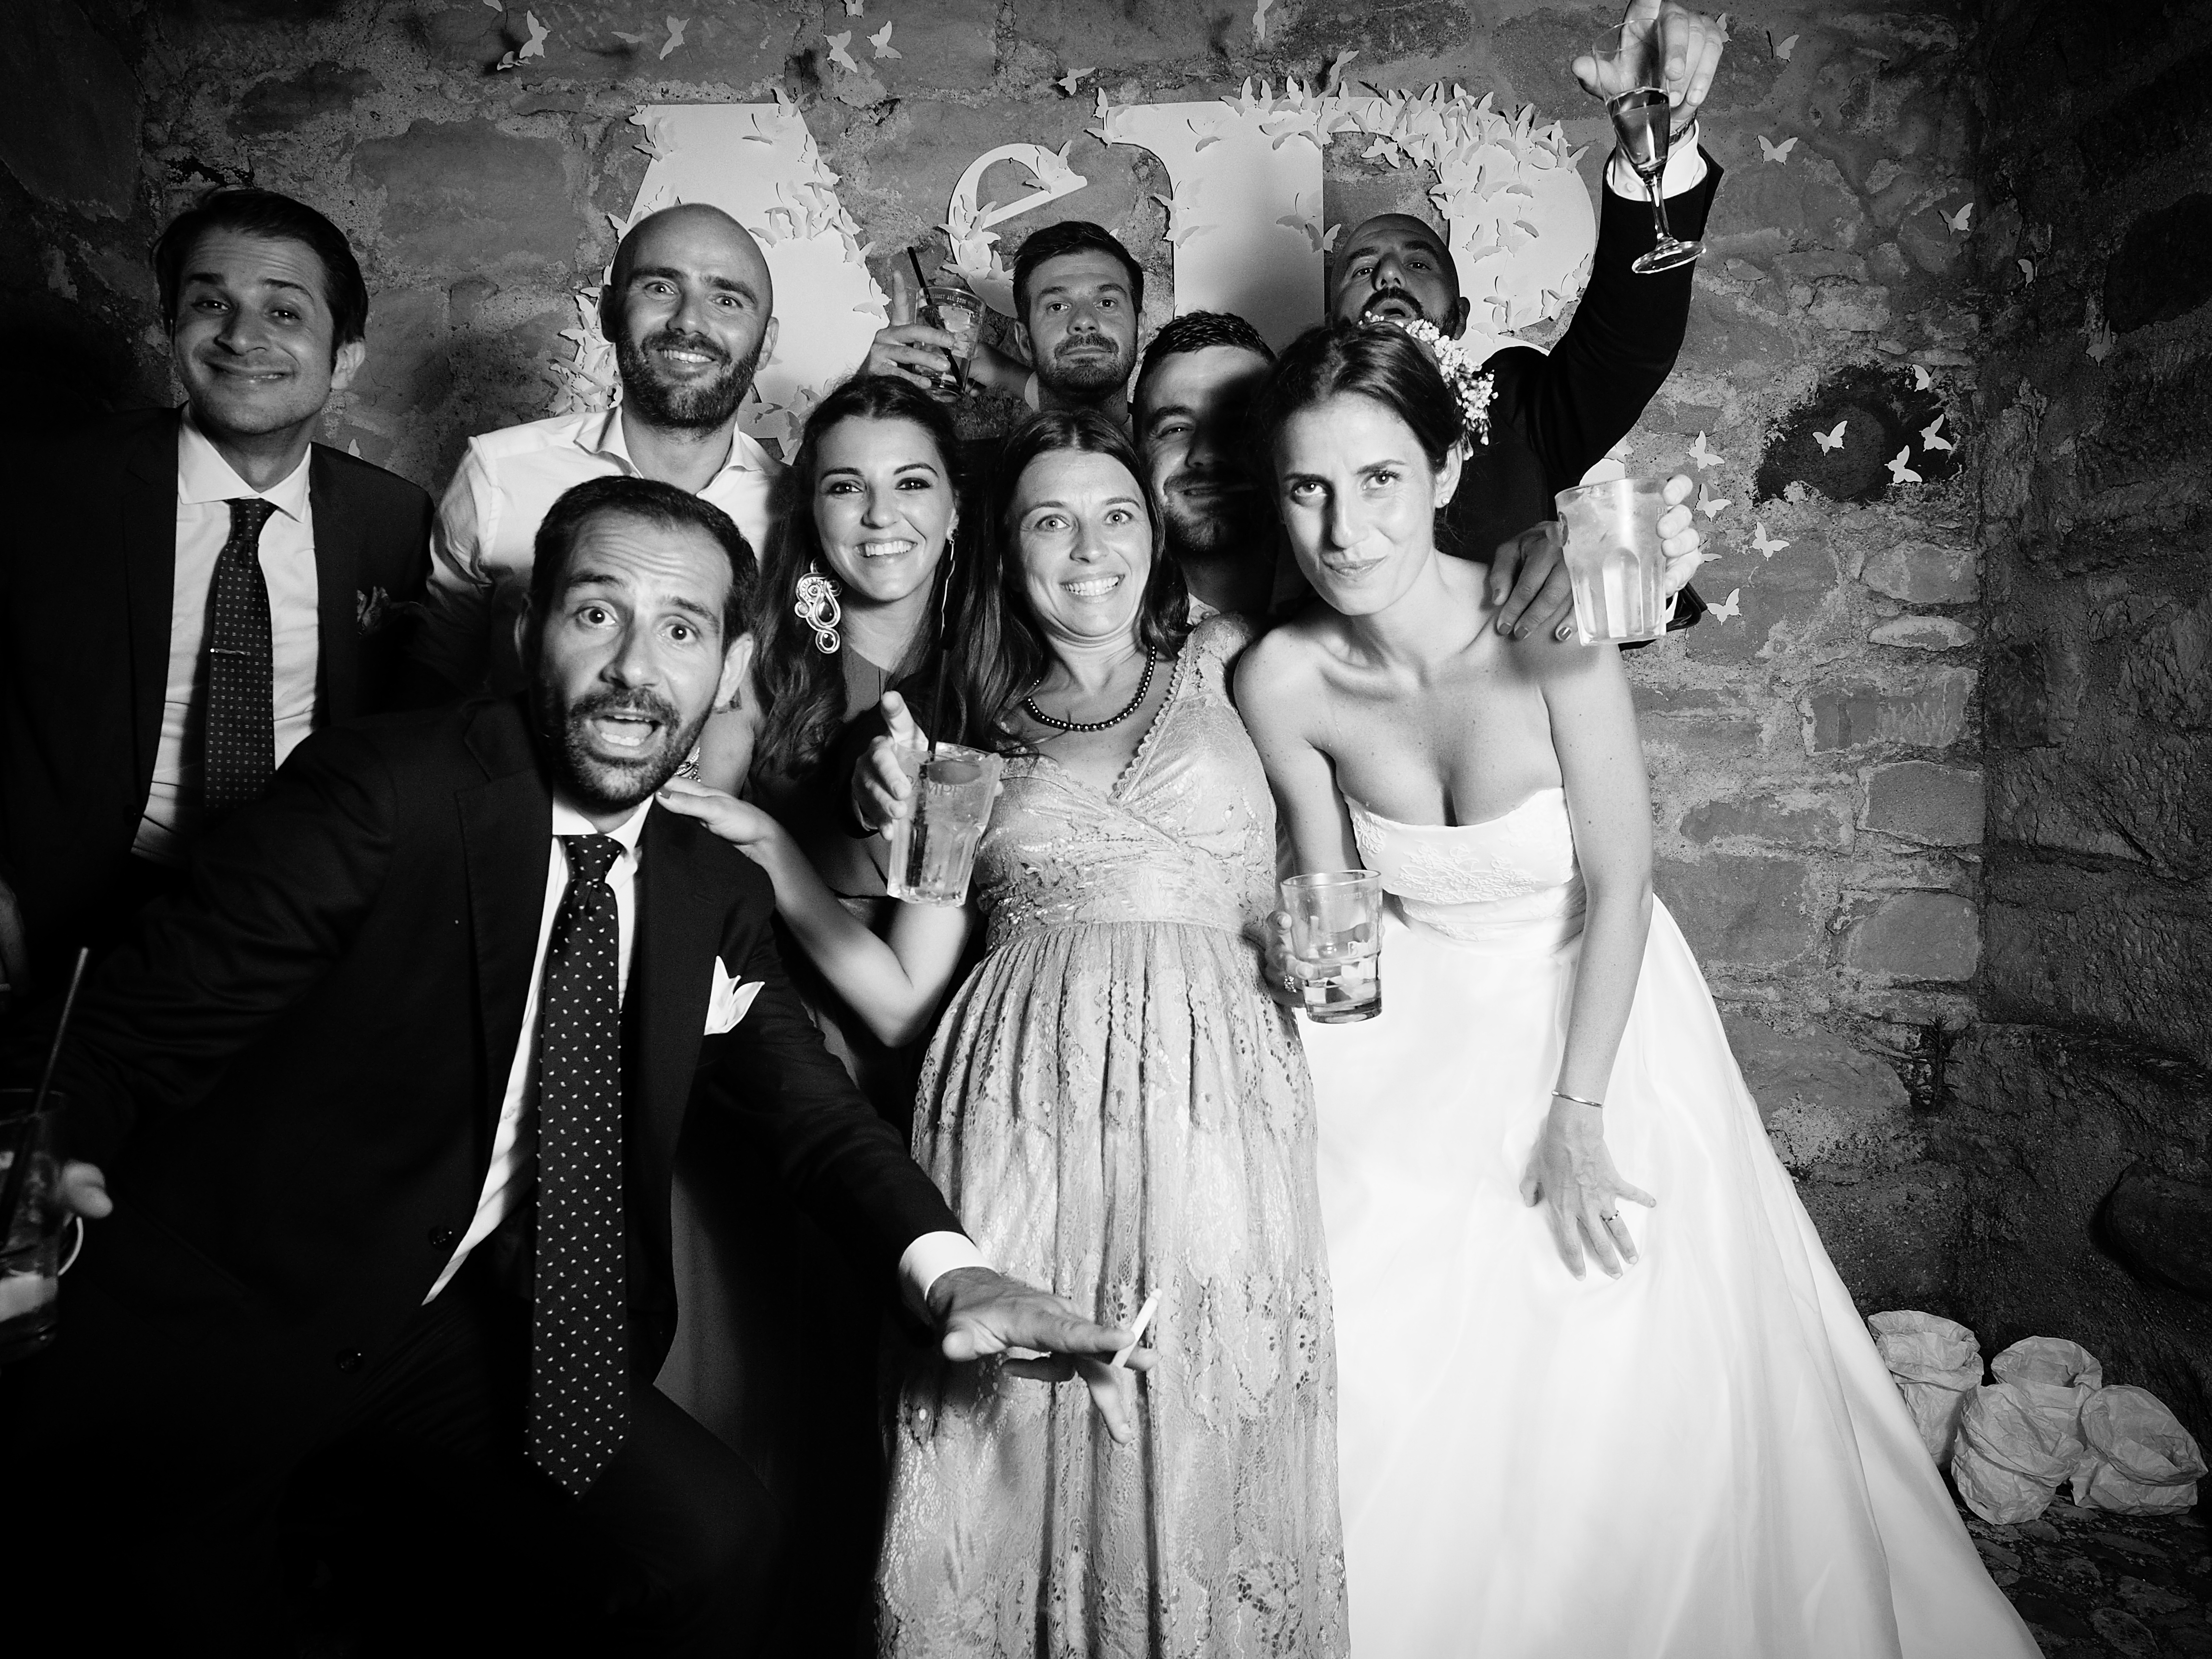 photo booth matrimonio cagliari